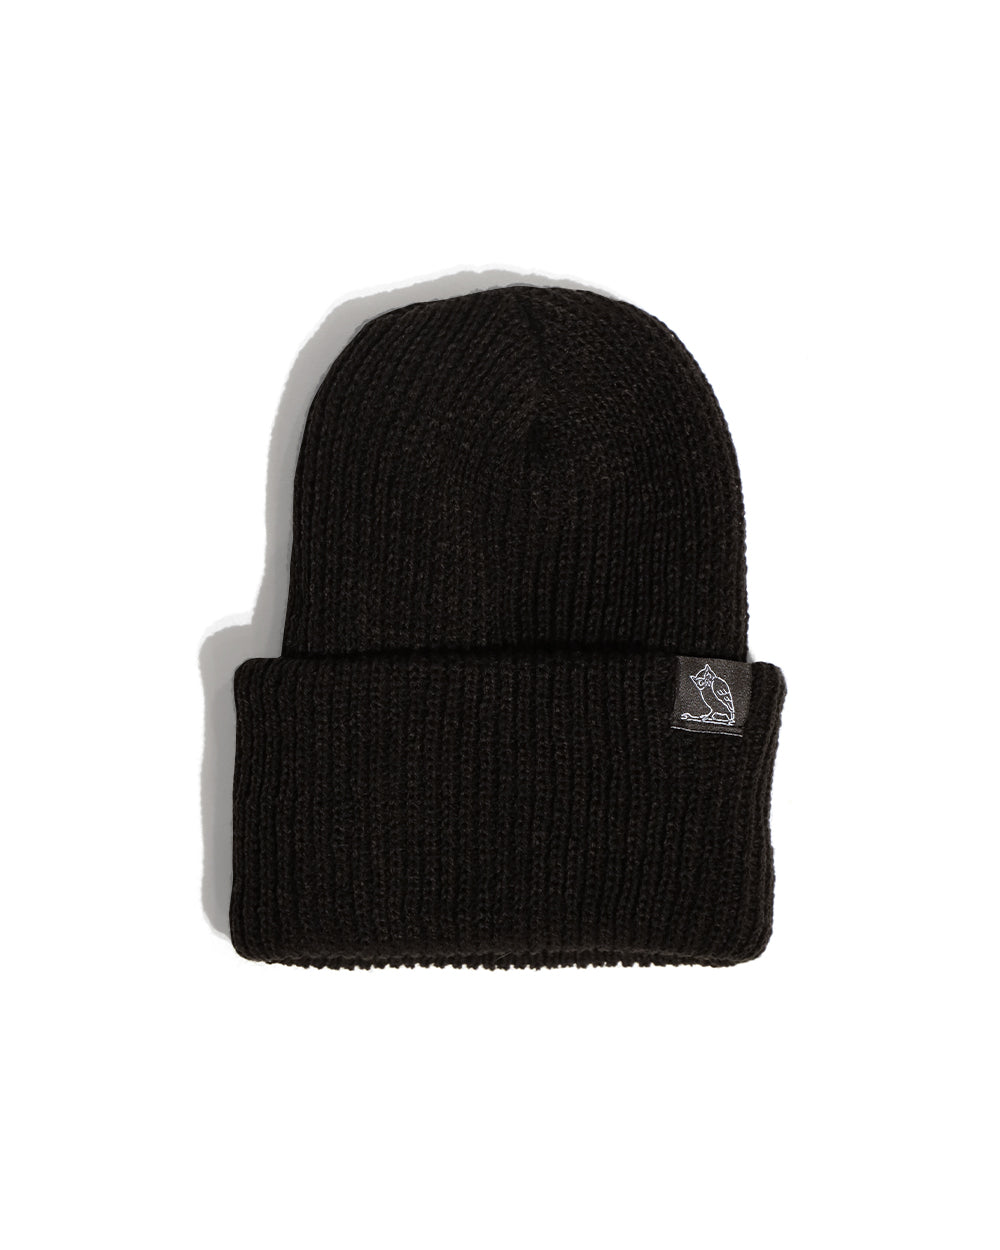 NIGHT CREW BEANIE - BLACK - Tankfarm & Co.